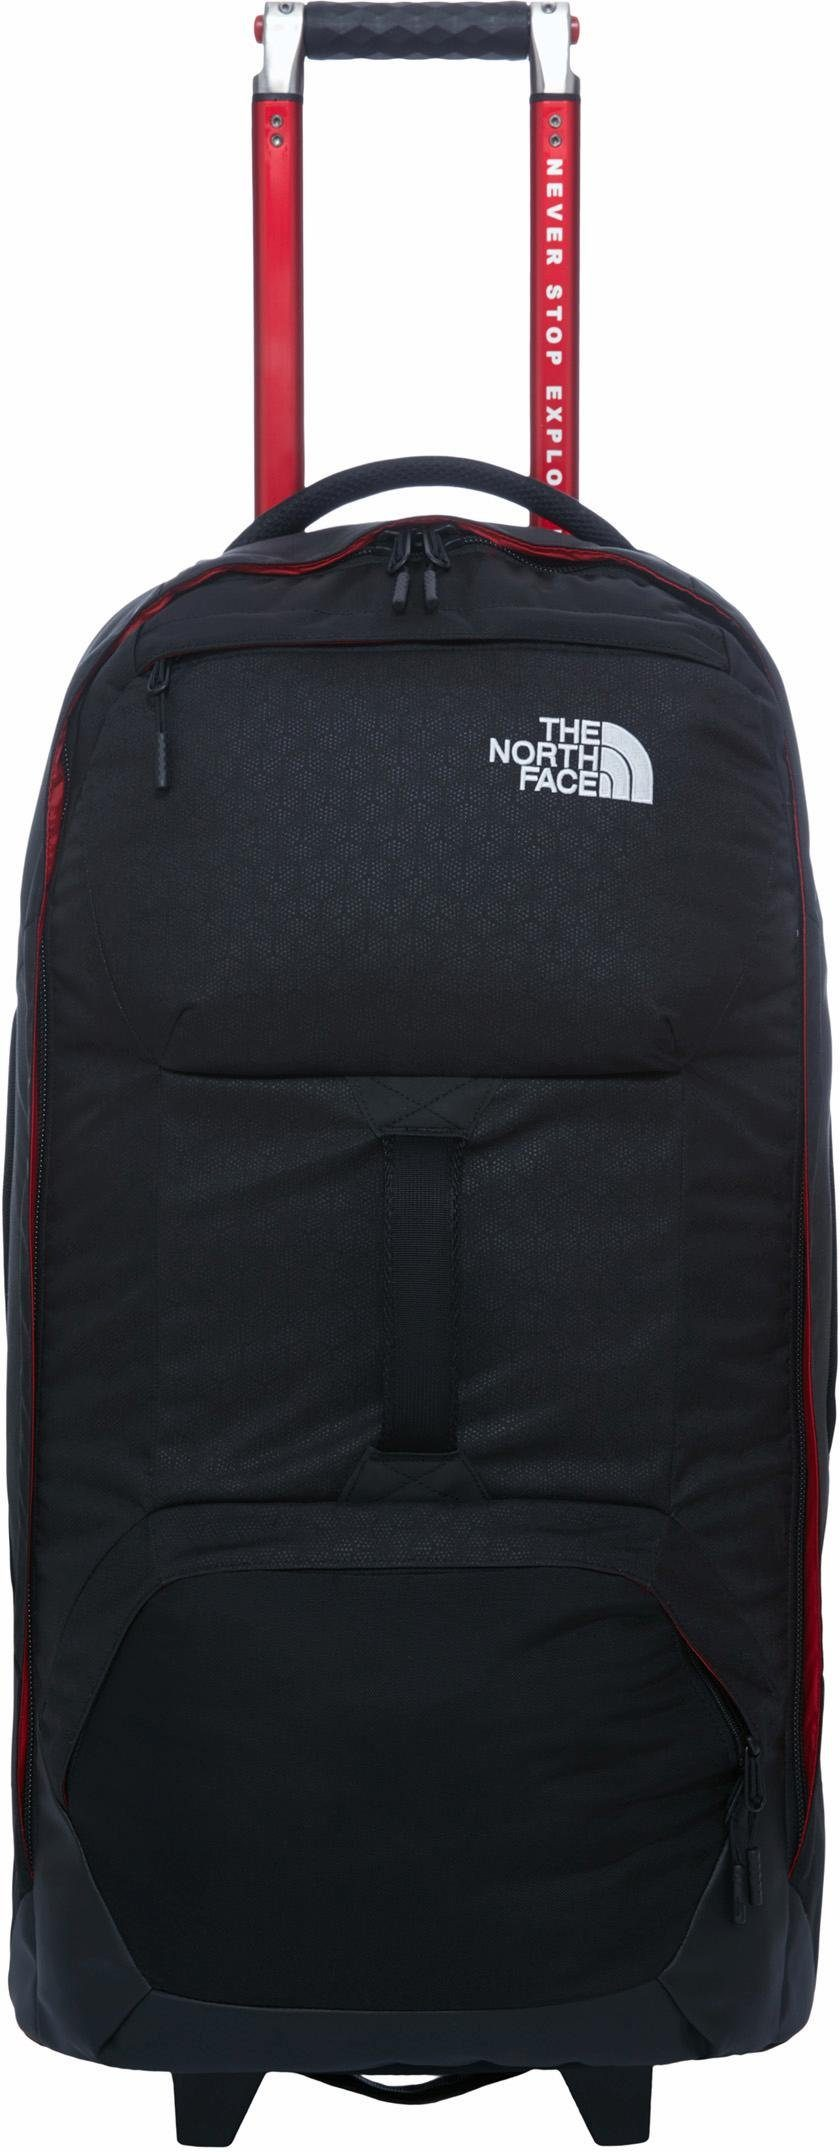 The North Face Reisetasche mit 2 Rollen, »Longhaul, 80 cm«